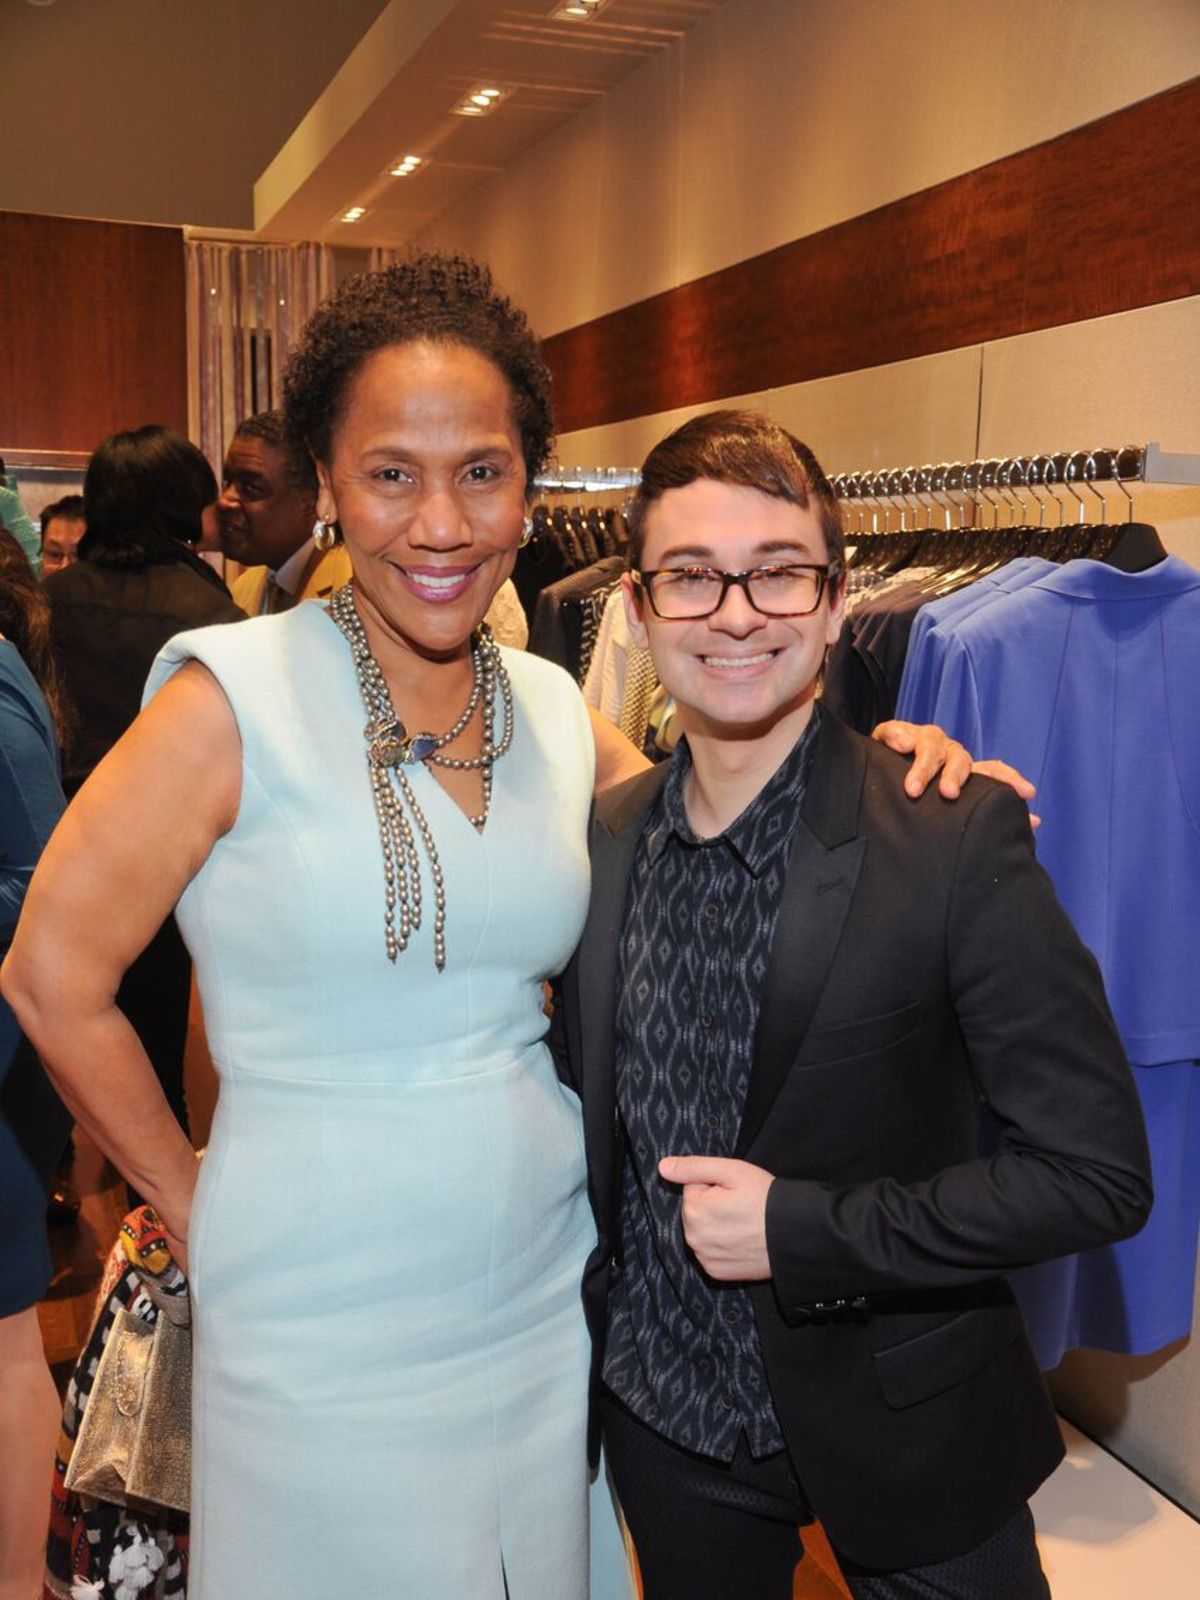 Myrtle Jones, Christian Siriano at Passion for Fashion party at Elizabeth Anthony